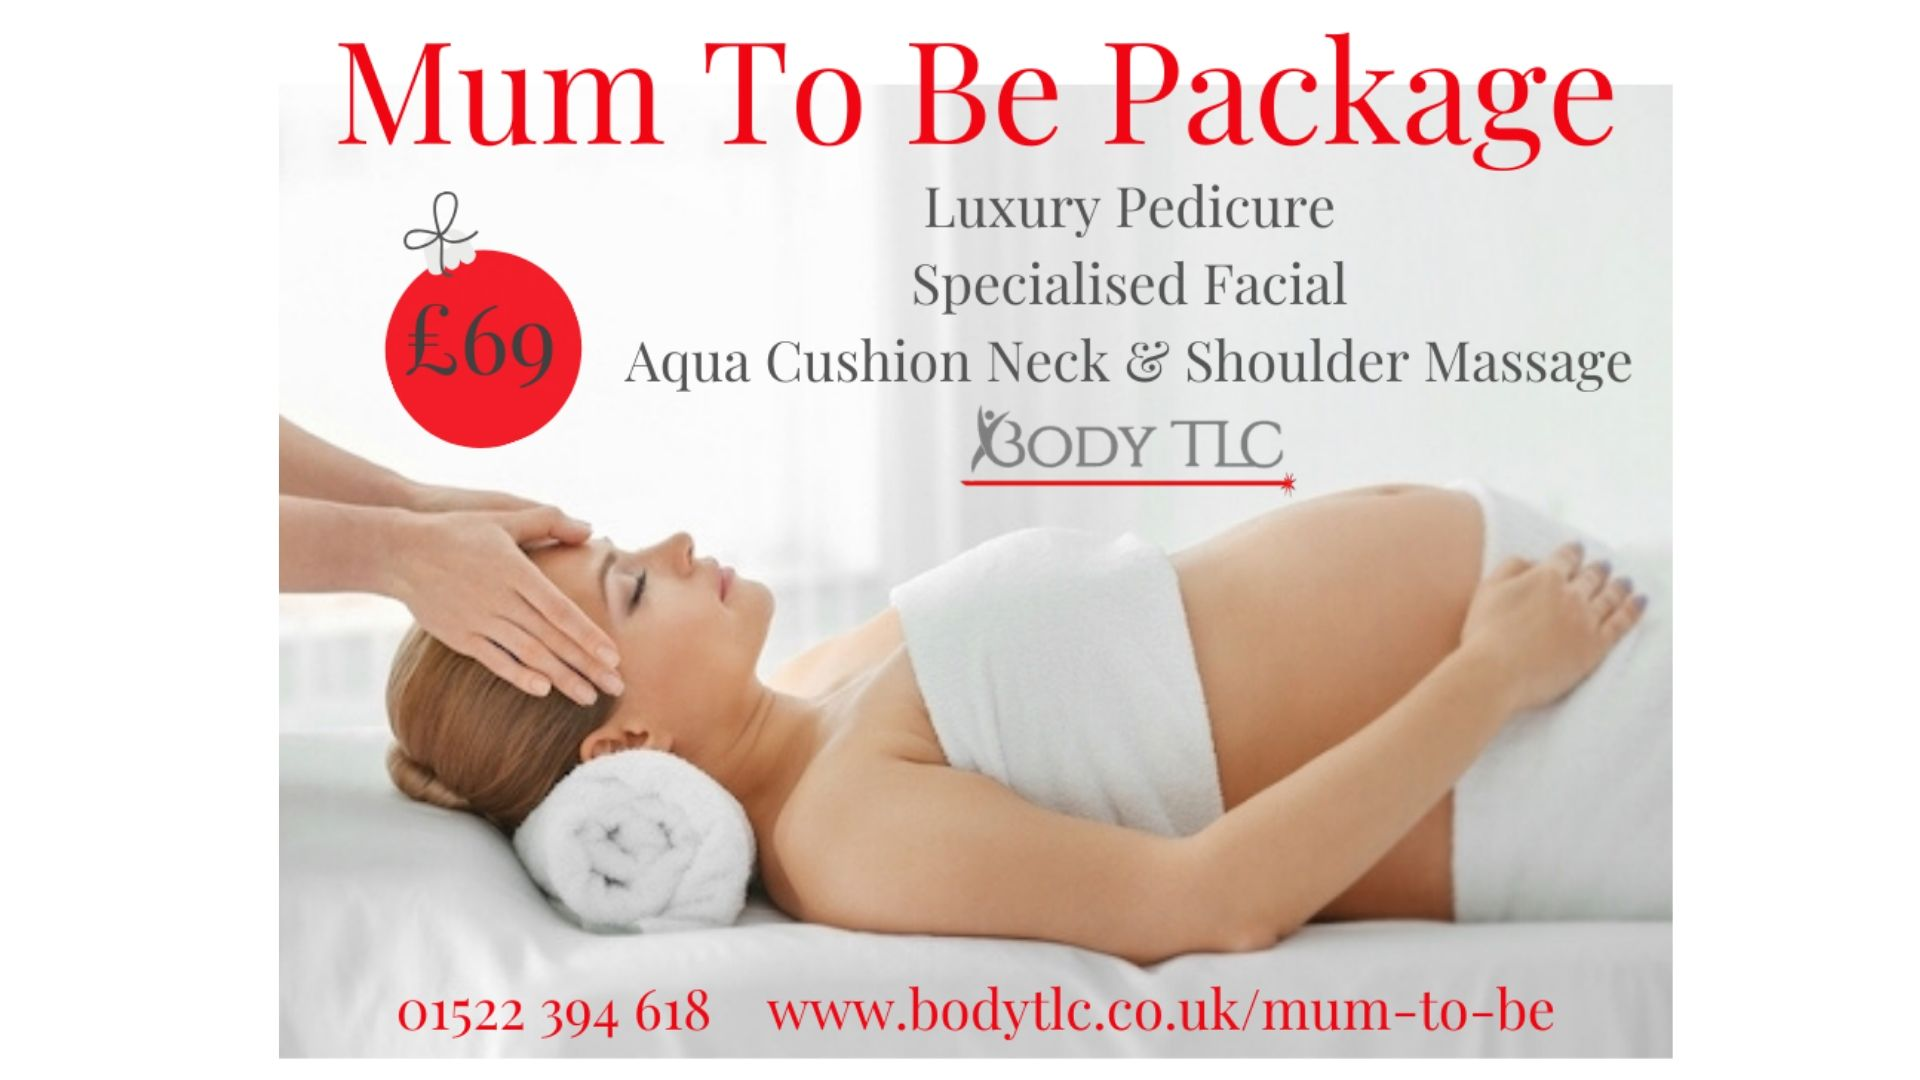 Mum To Be Package